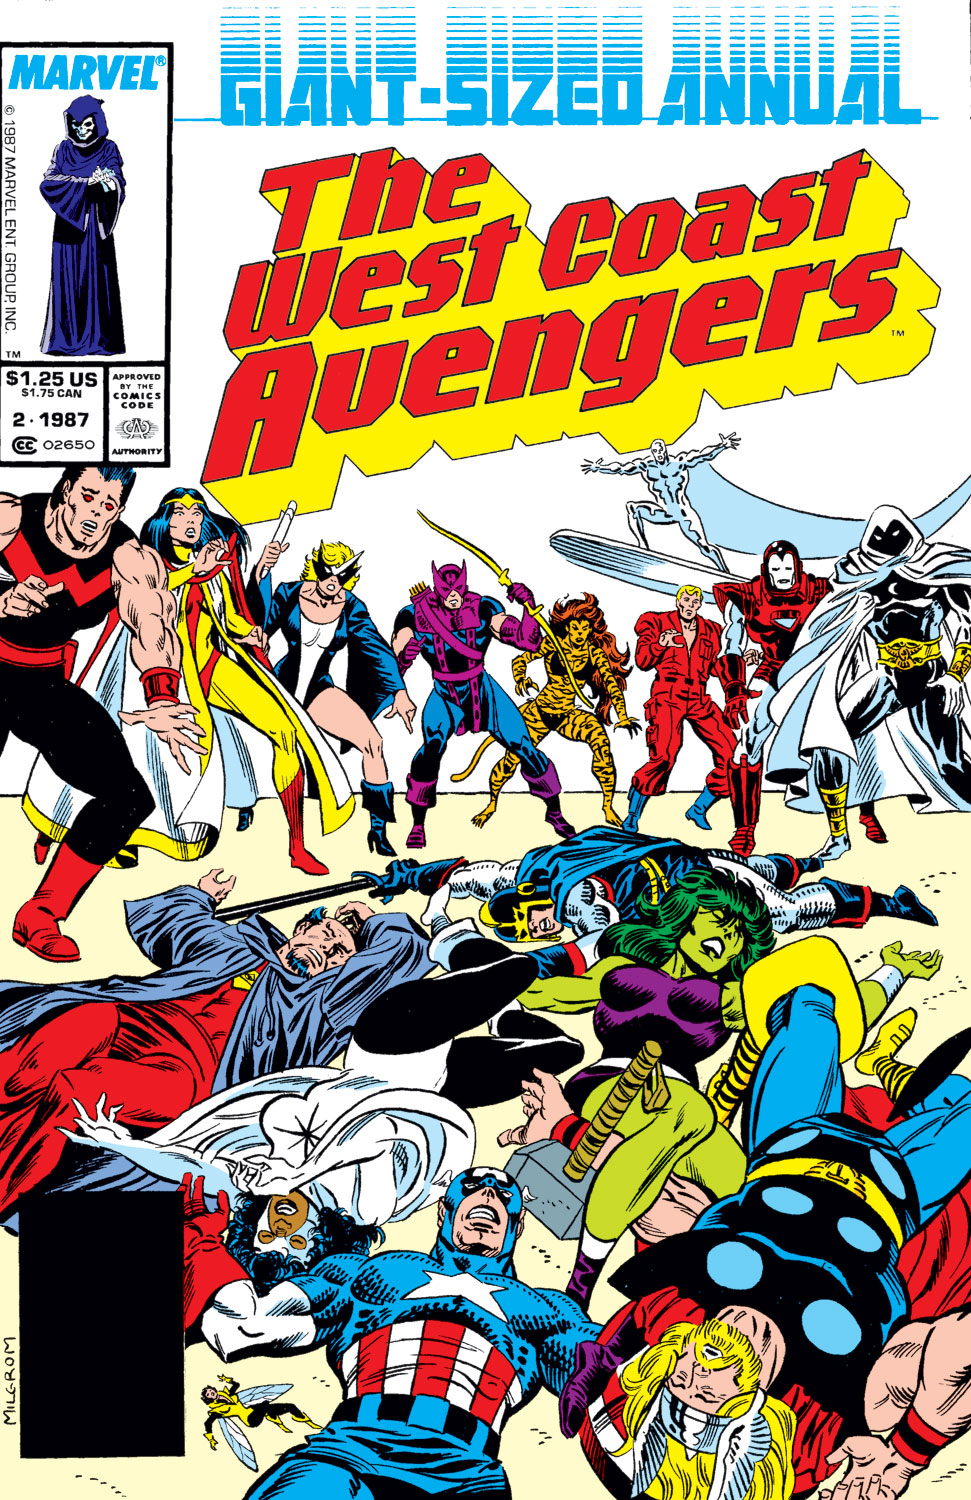 West Coast Avengers Annual (1986) #2